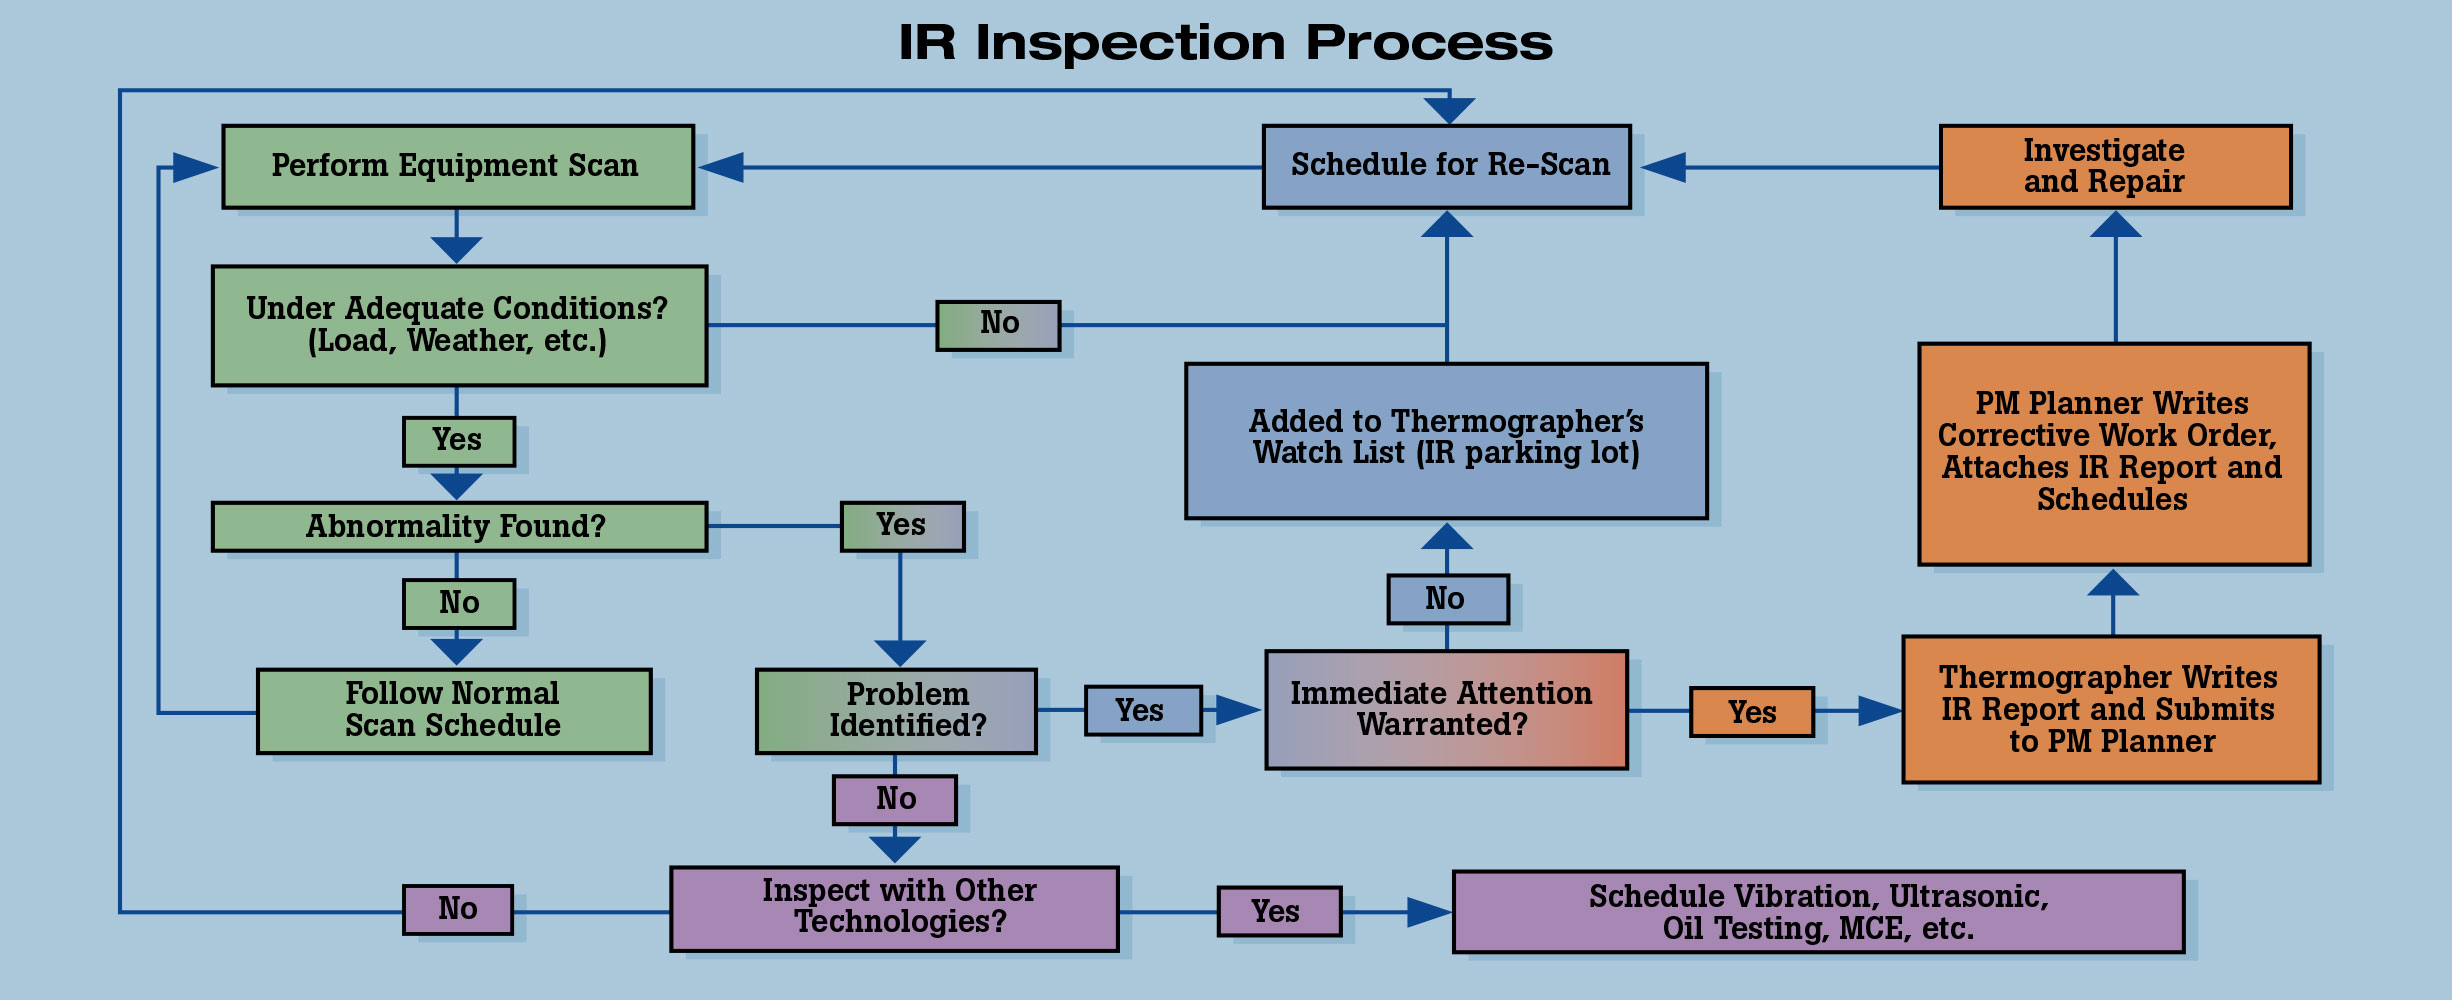 Diagramme renseignant un processus d'inspection infrarouge